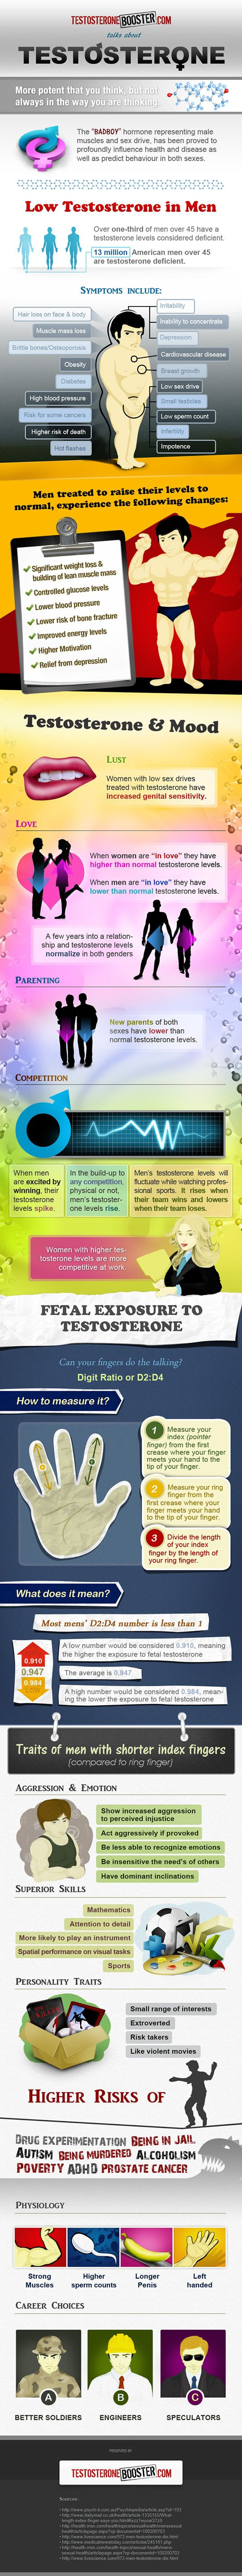 Testosterone: Potent But Not A